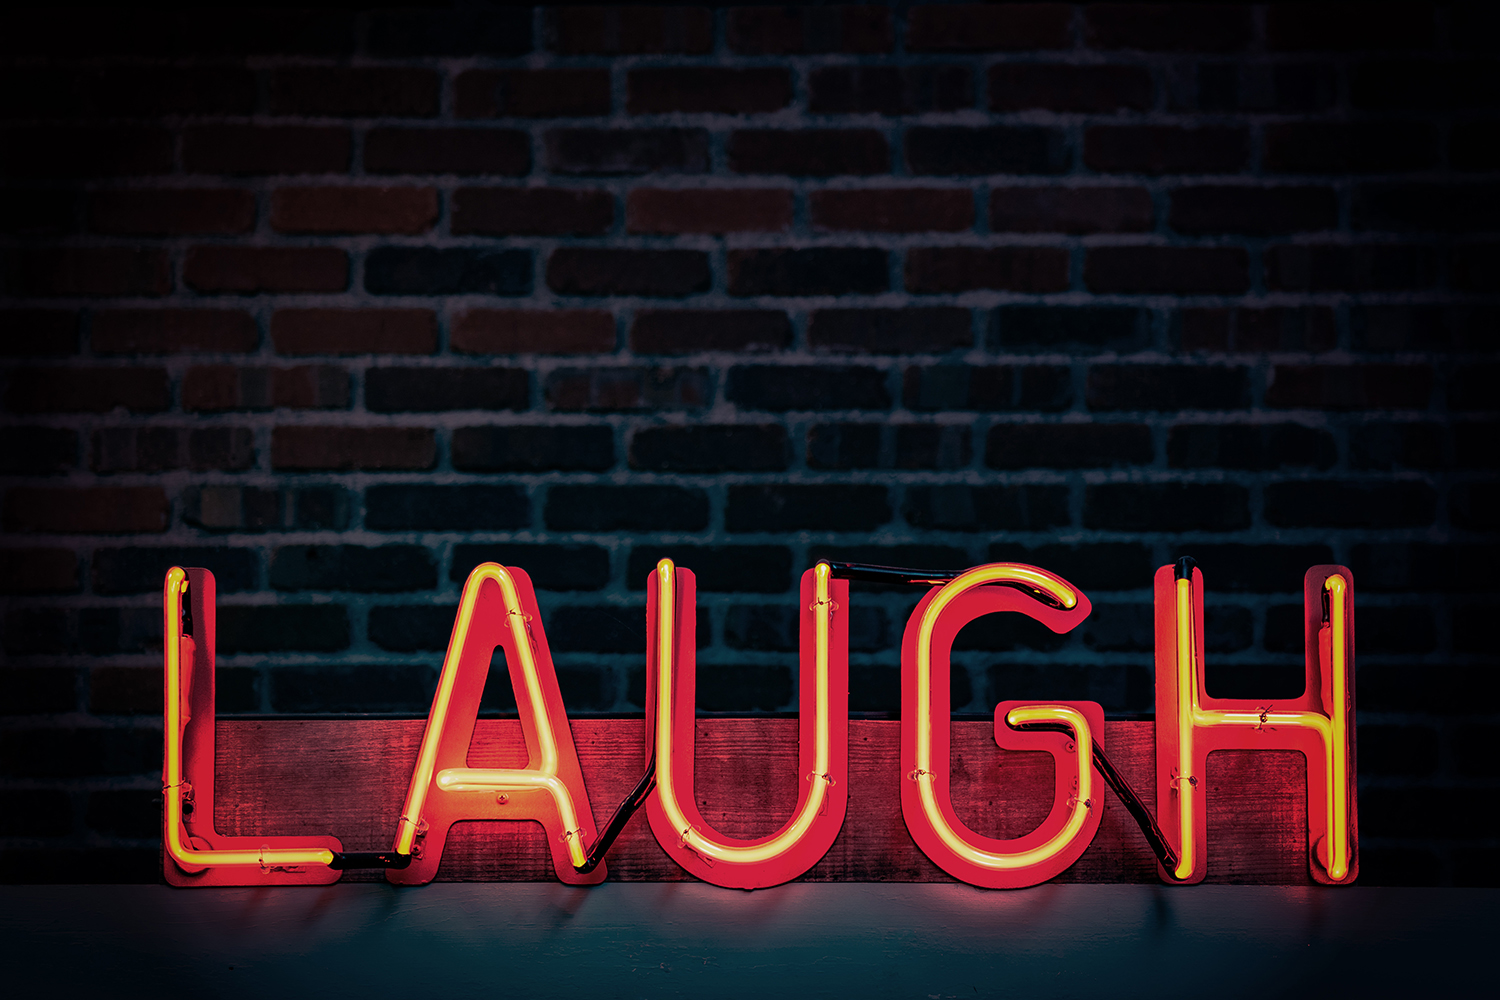 Laugh-neon-sign_resize